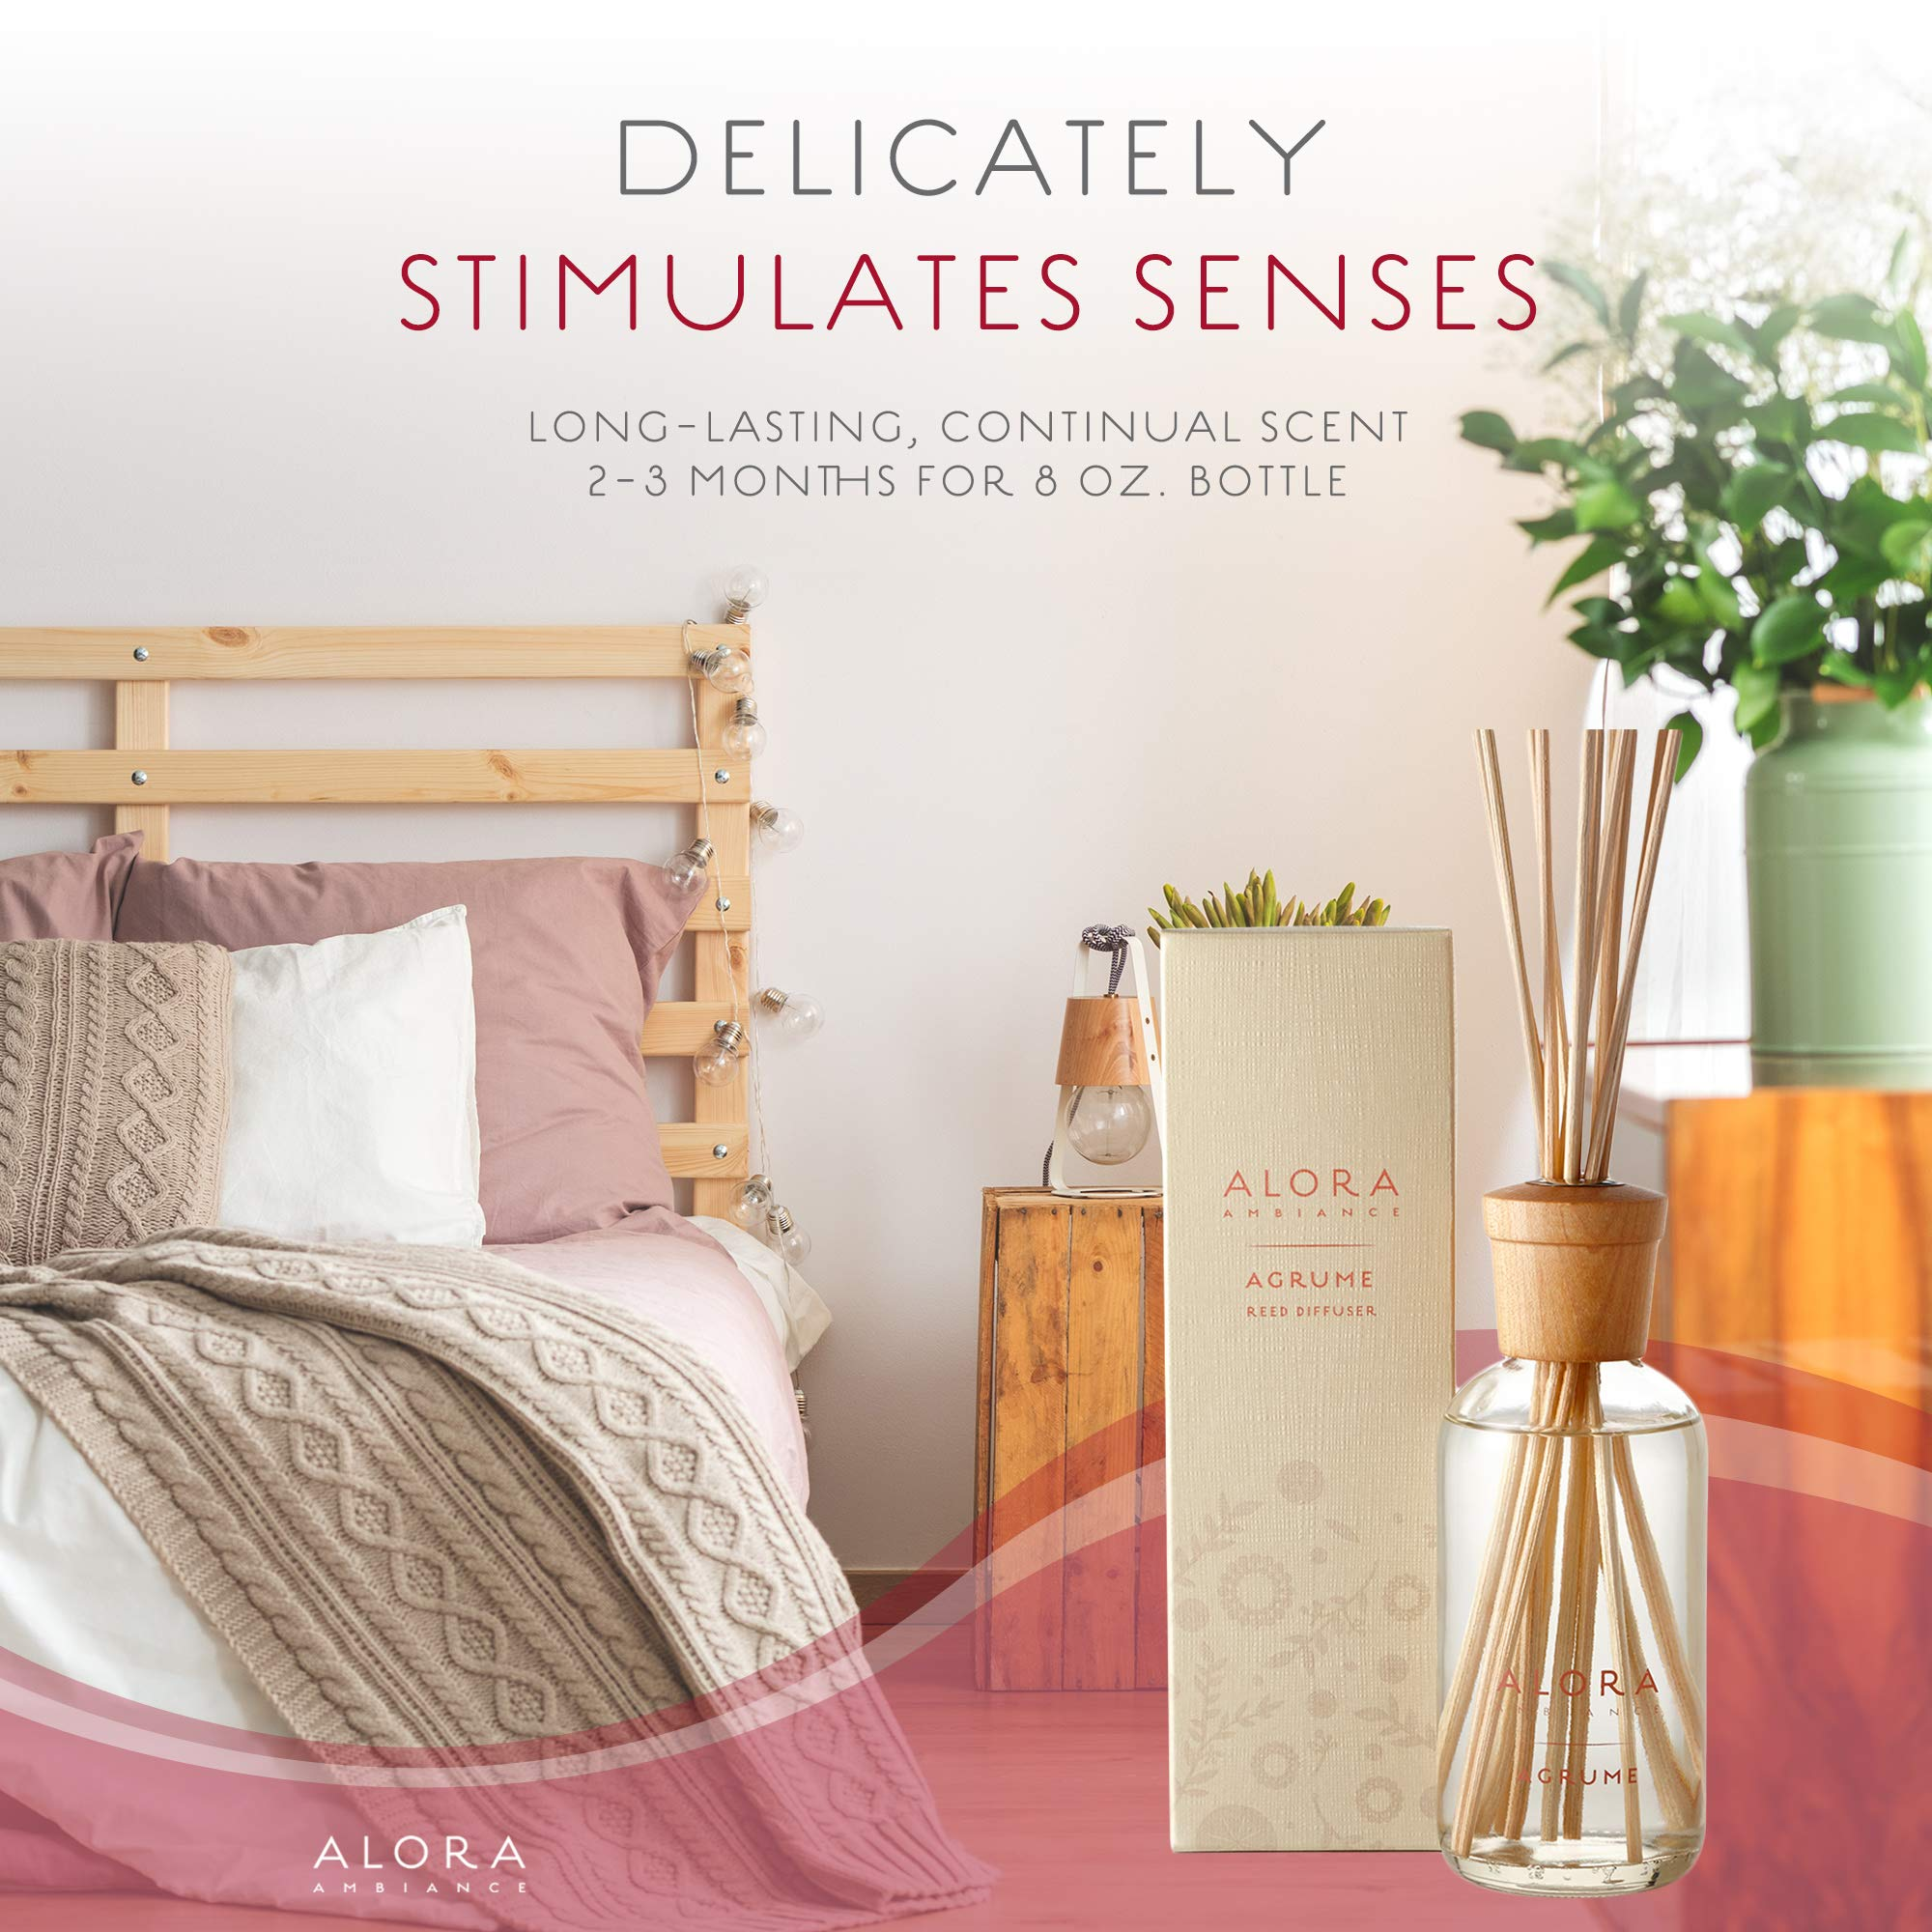 Alora Ambiance Reed Diffuser Agrume, 8 Oz by AloraAmbiance (Image #4)